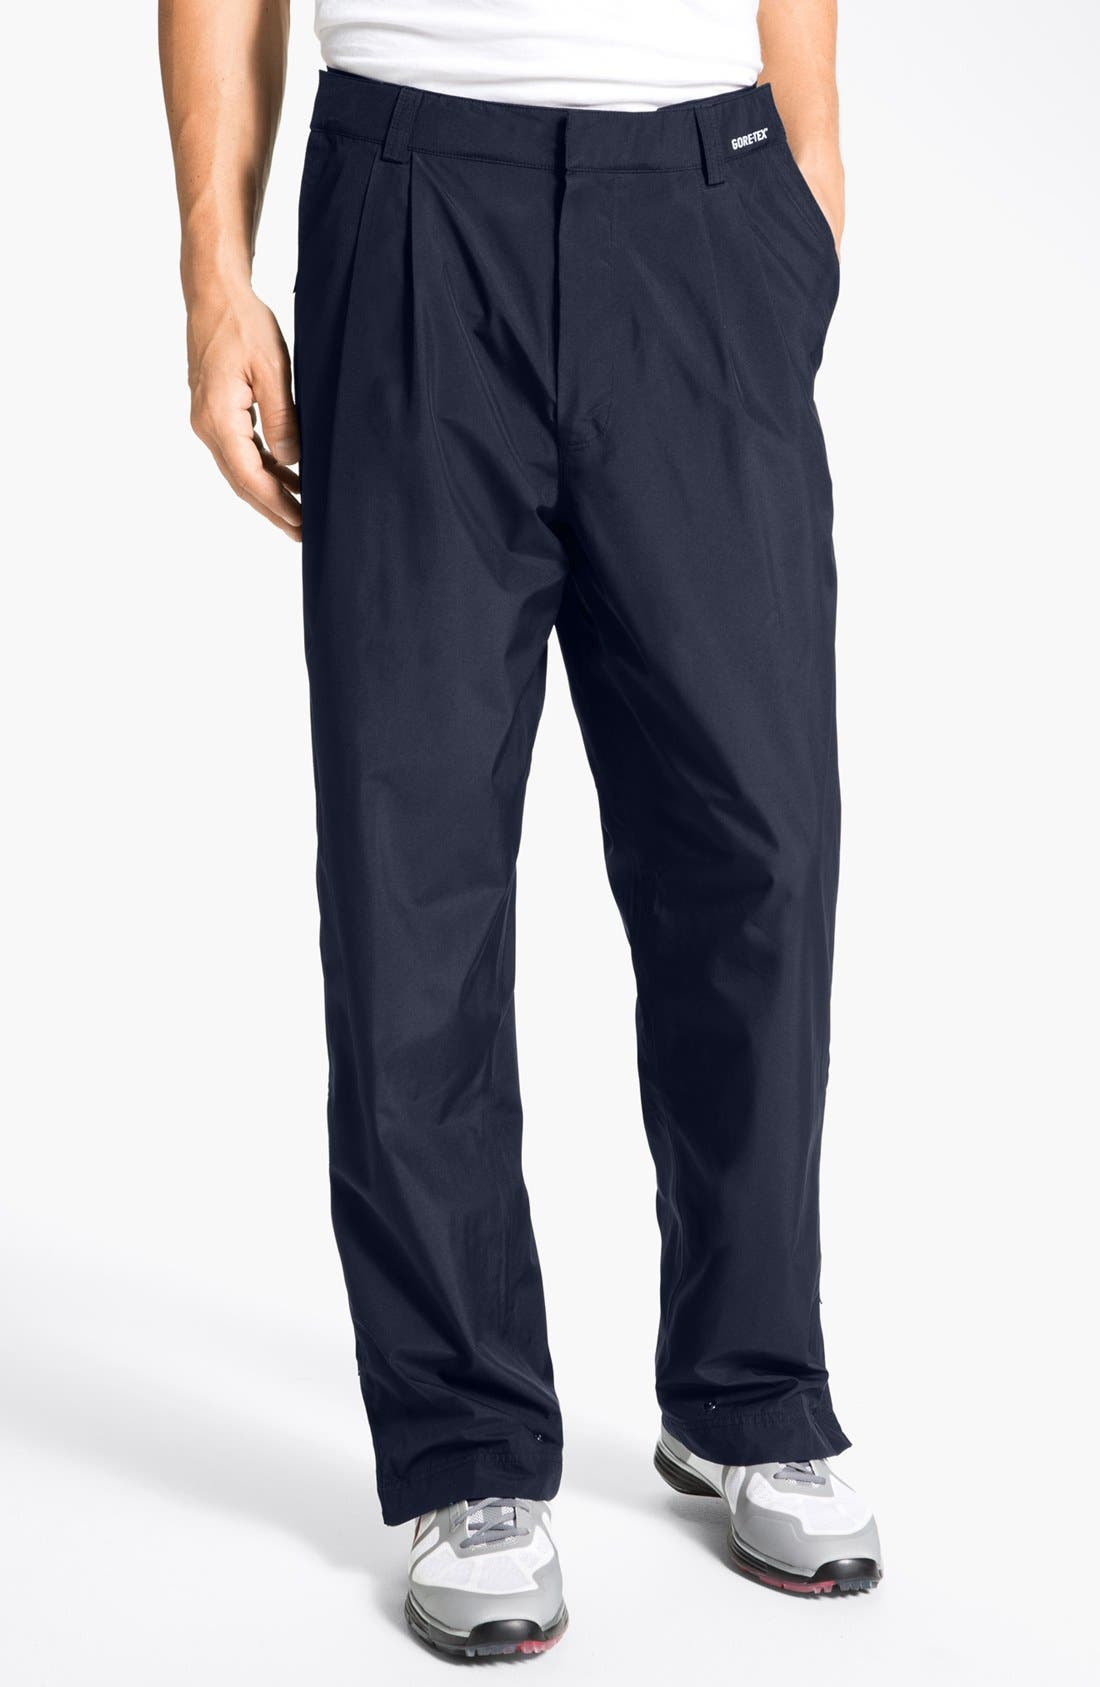 Alternate Image 1 Selected - Zero Restriction 'Tour Lite II' Pants